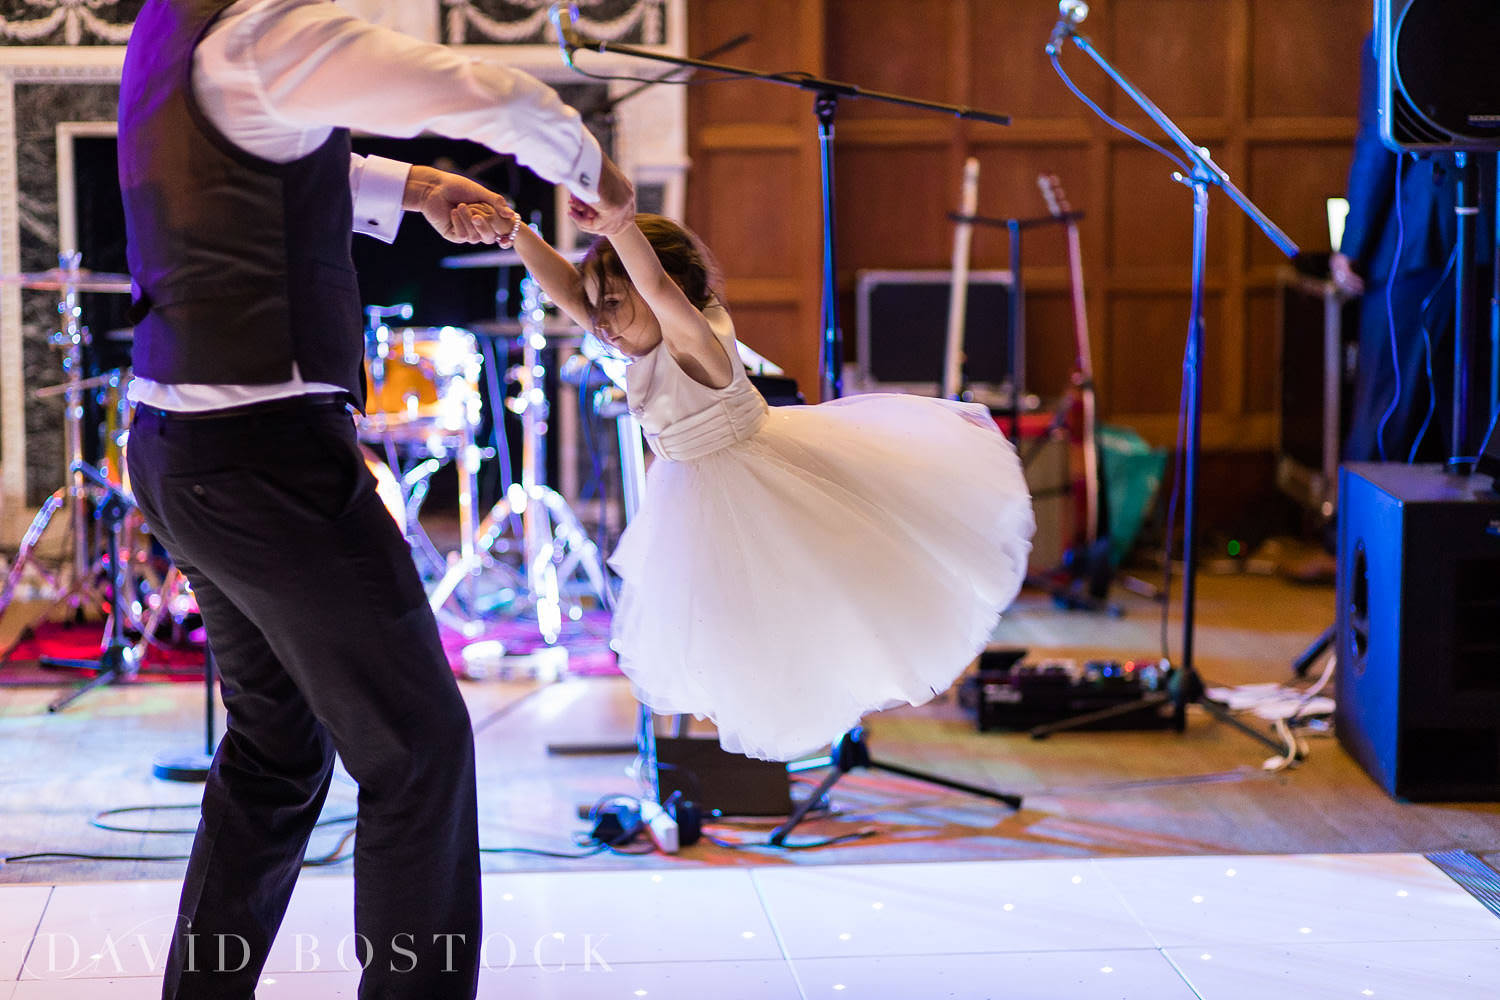 Eynsham Hall wedding photo disco